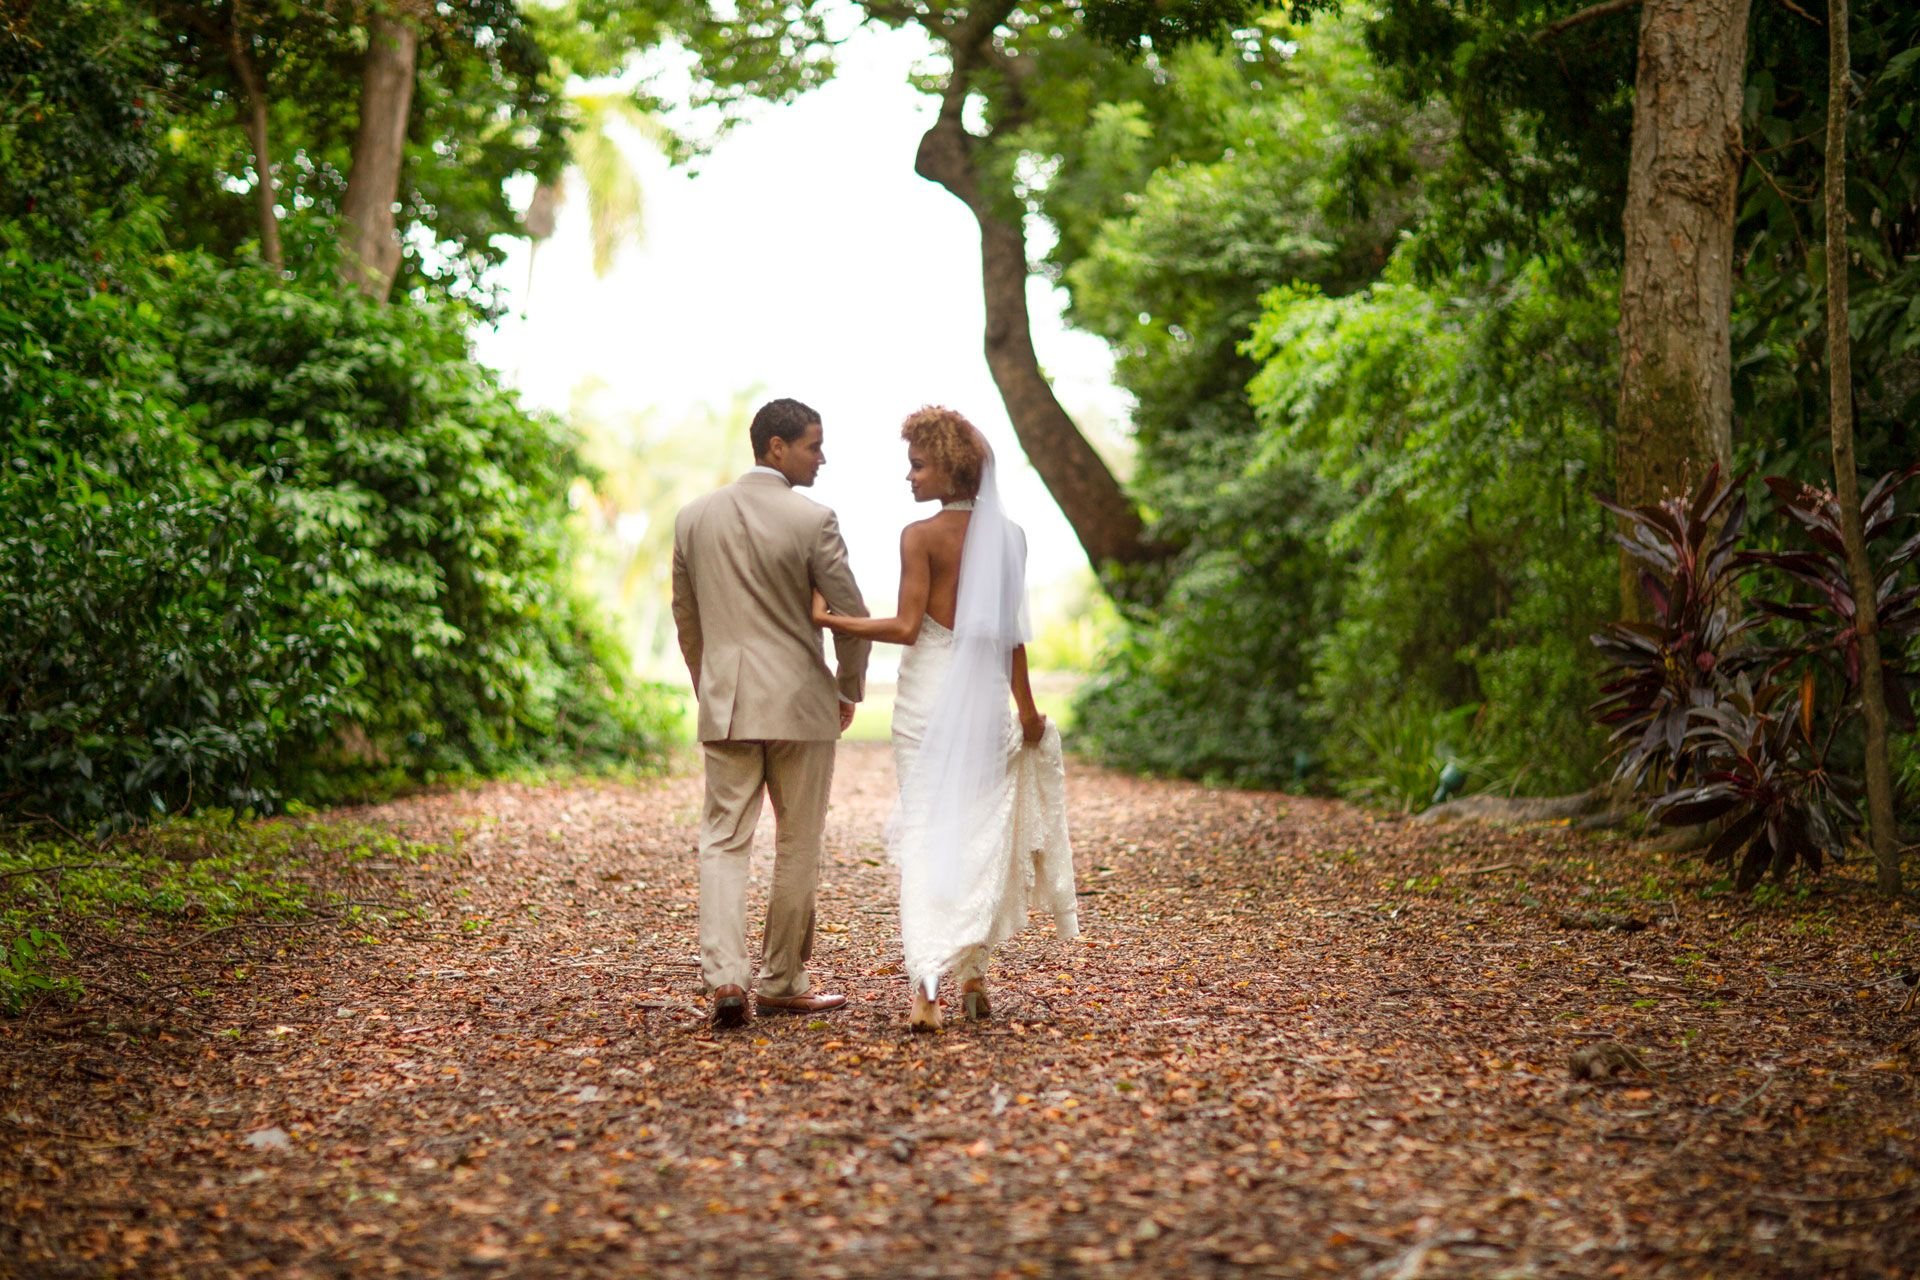 Elopement wedding in the forest